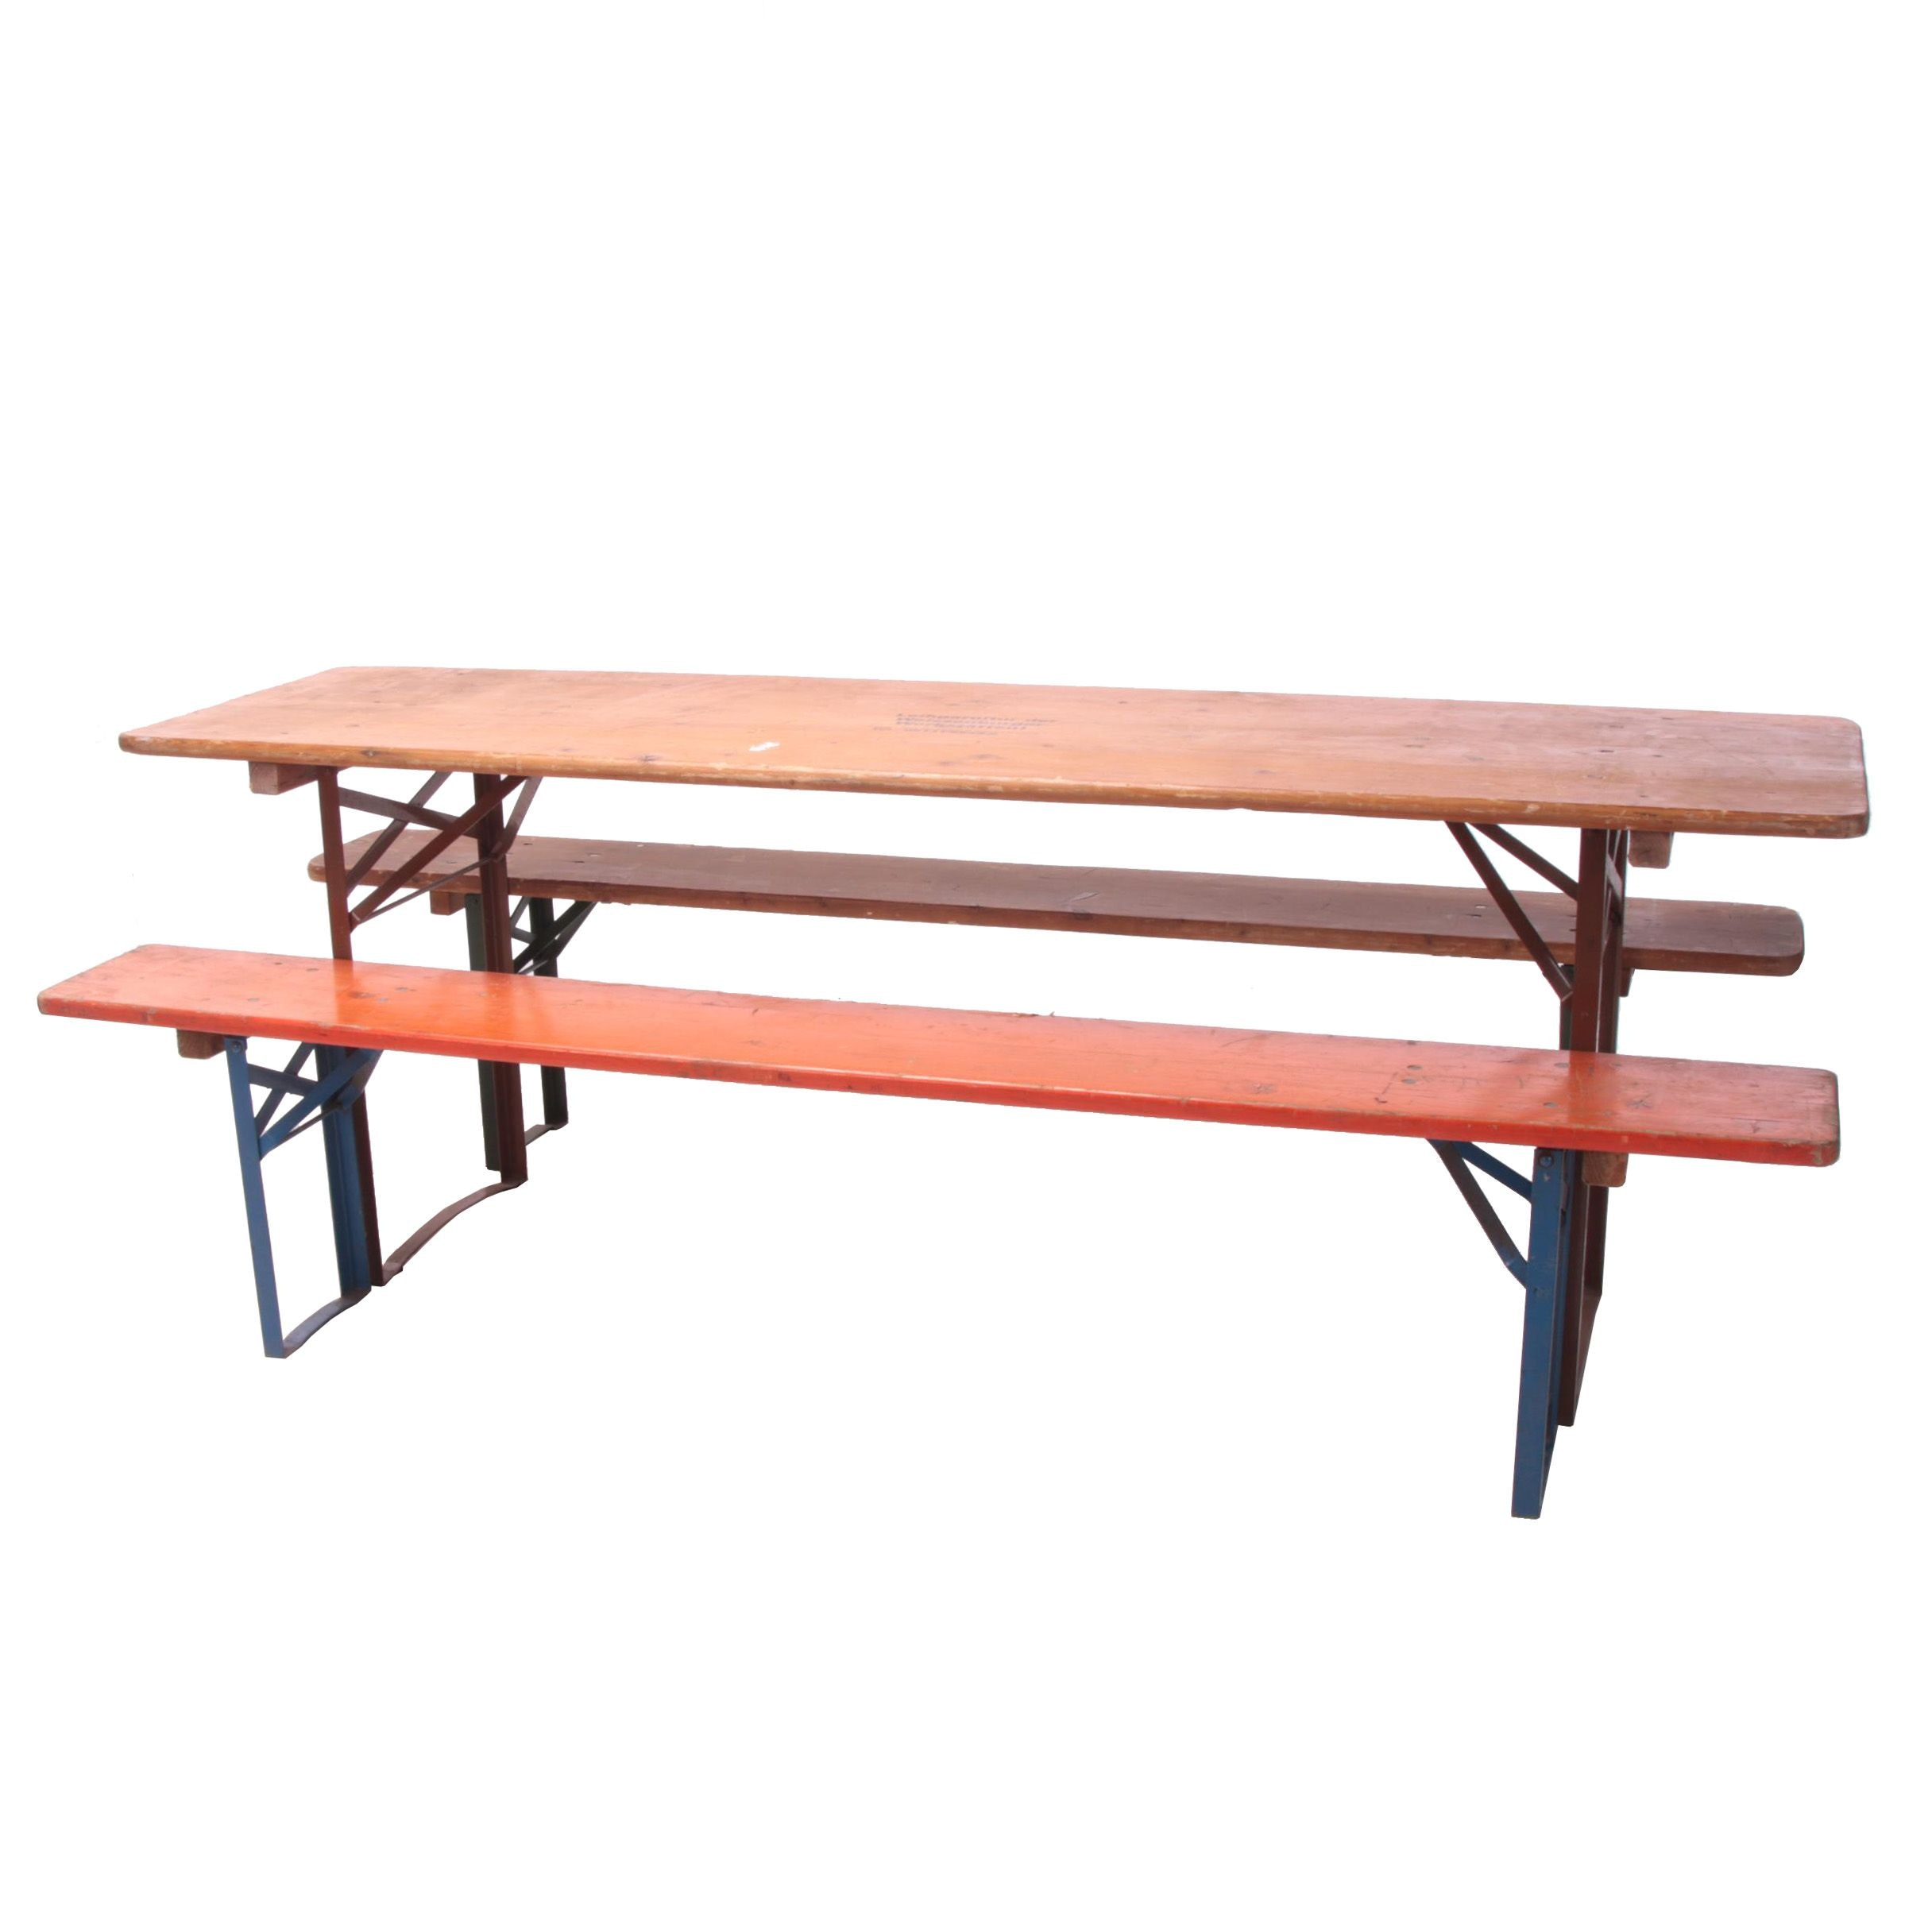 German Beirgarten Wooden Folding Table and Benches, Late 20th Century